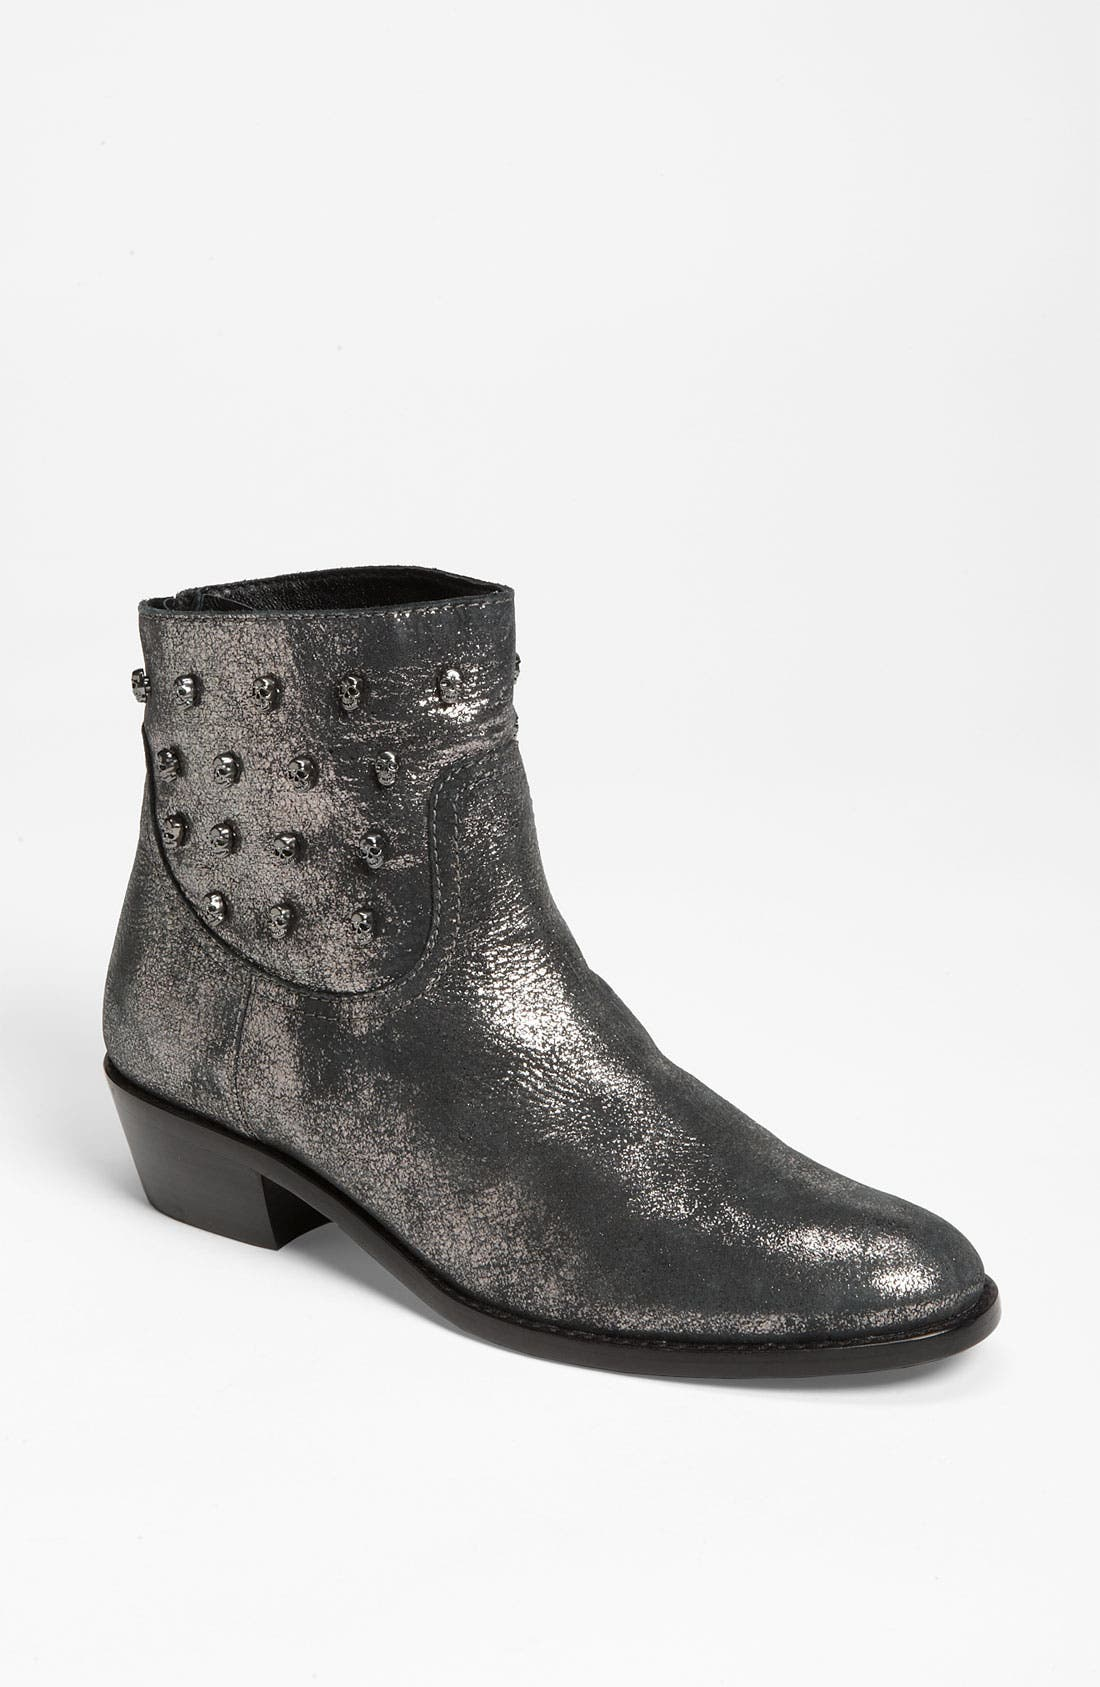 ZADIG & VOLTAIRE 'Teddy' Boot, Main, color, 001